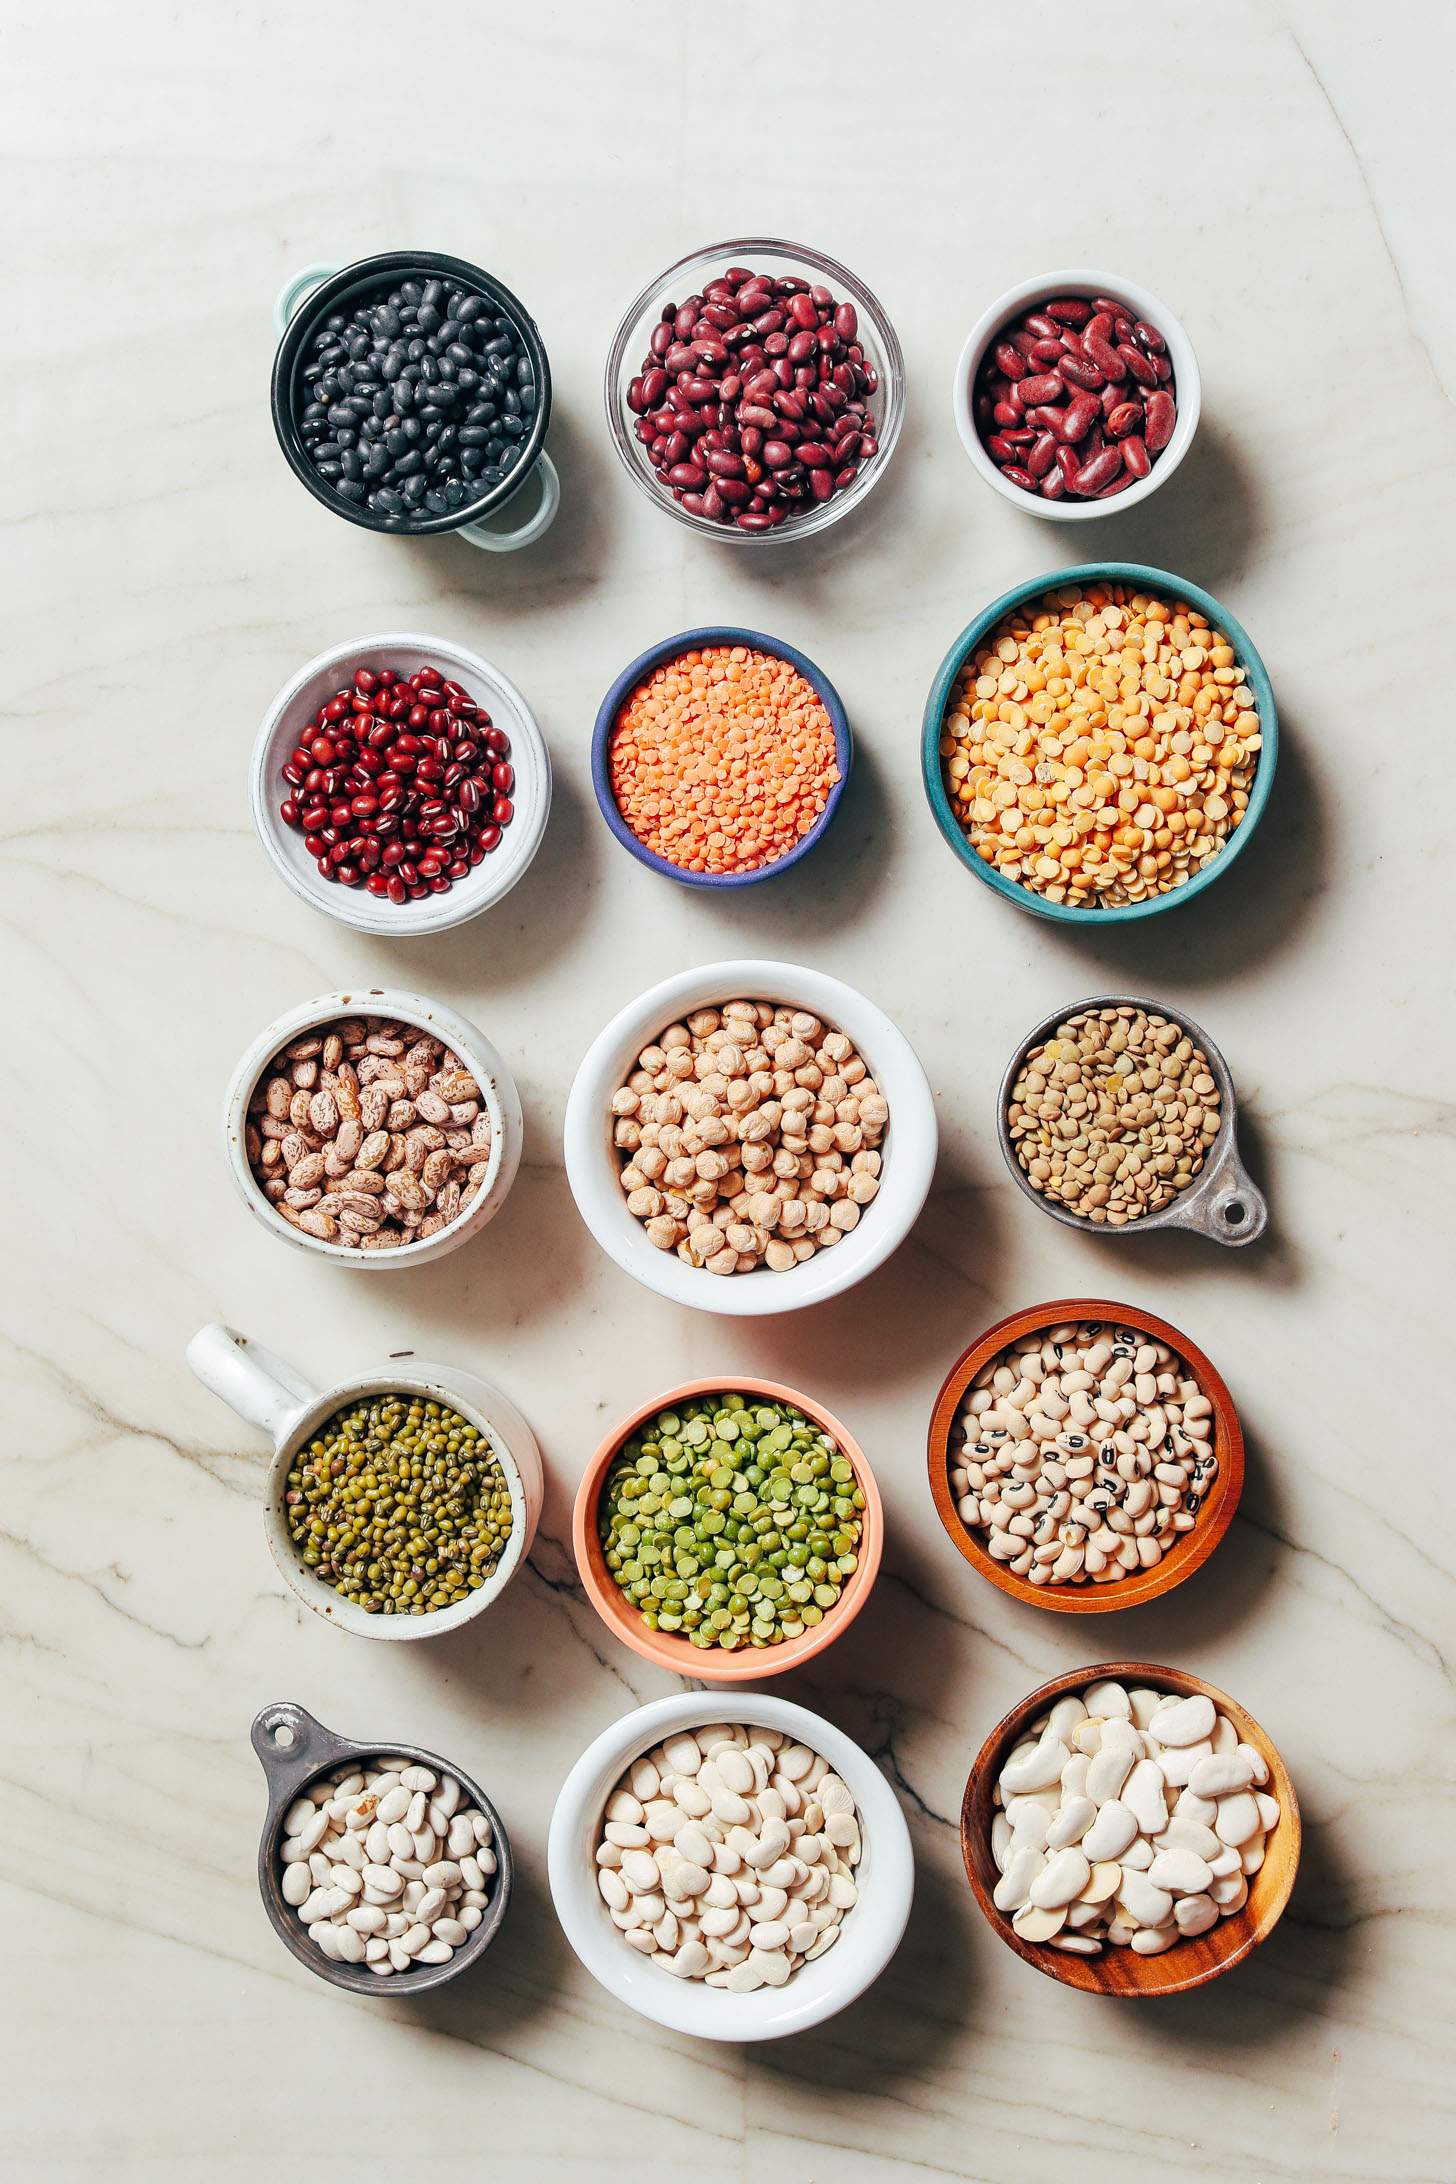 Assortment of beans for cooking in the Instant Pot